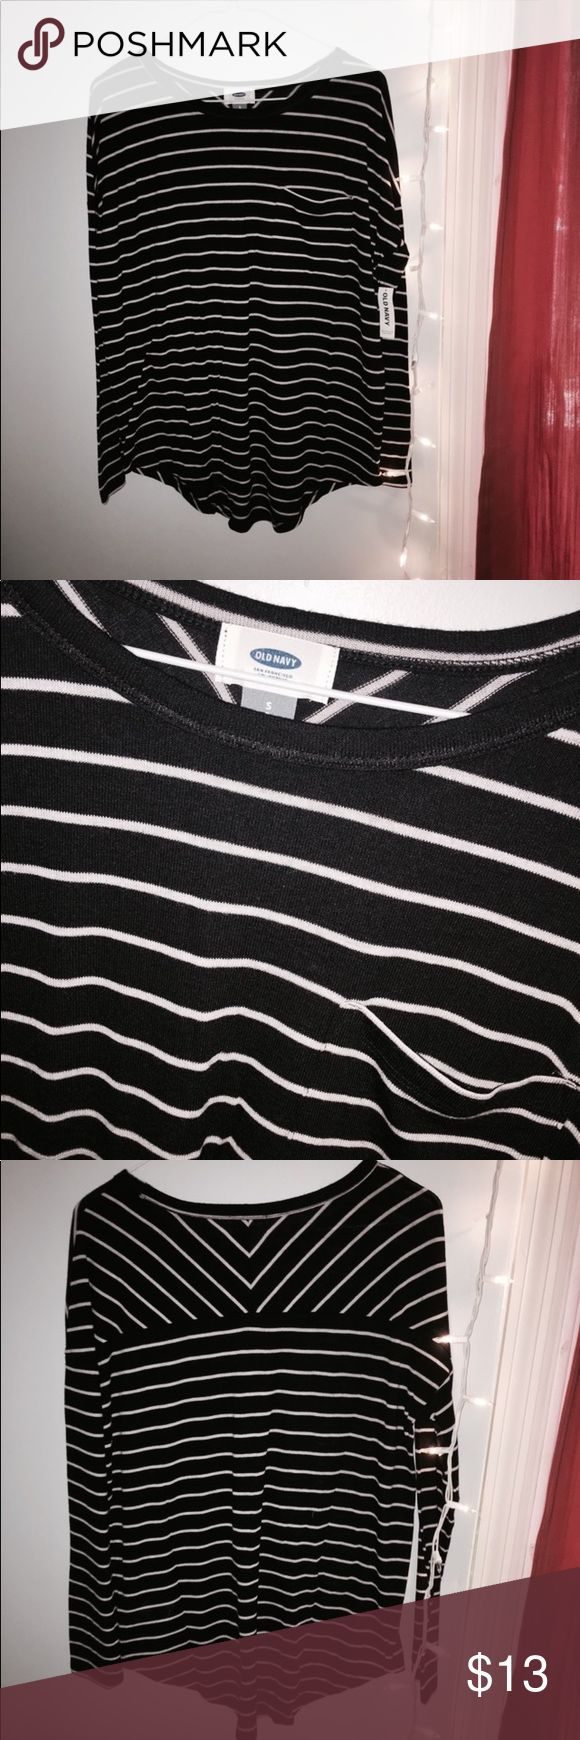 Old Navy, W/ TAGS. Size S Old Navy long sleeve shirt, ordered online, never worn, tags still on. Brand new shirt. Black and white striped. Size S. front pocket and super soft Old Navy Tops Tees - Long Sleeve